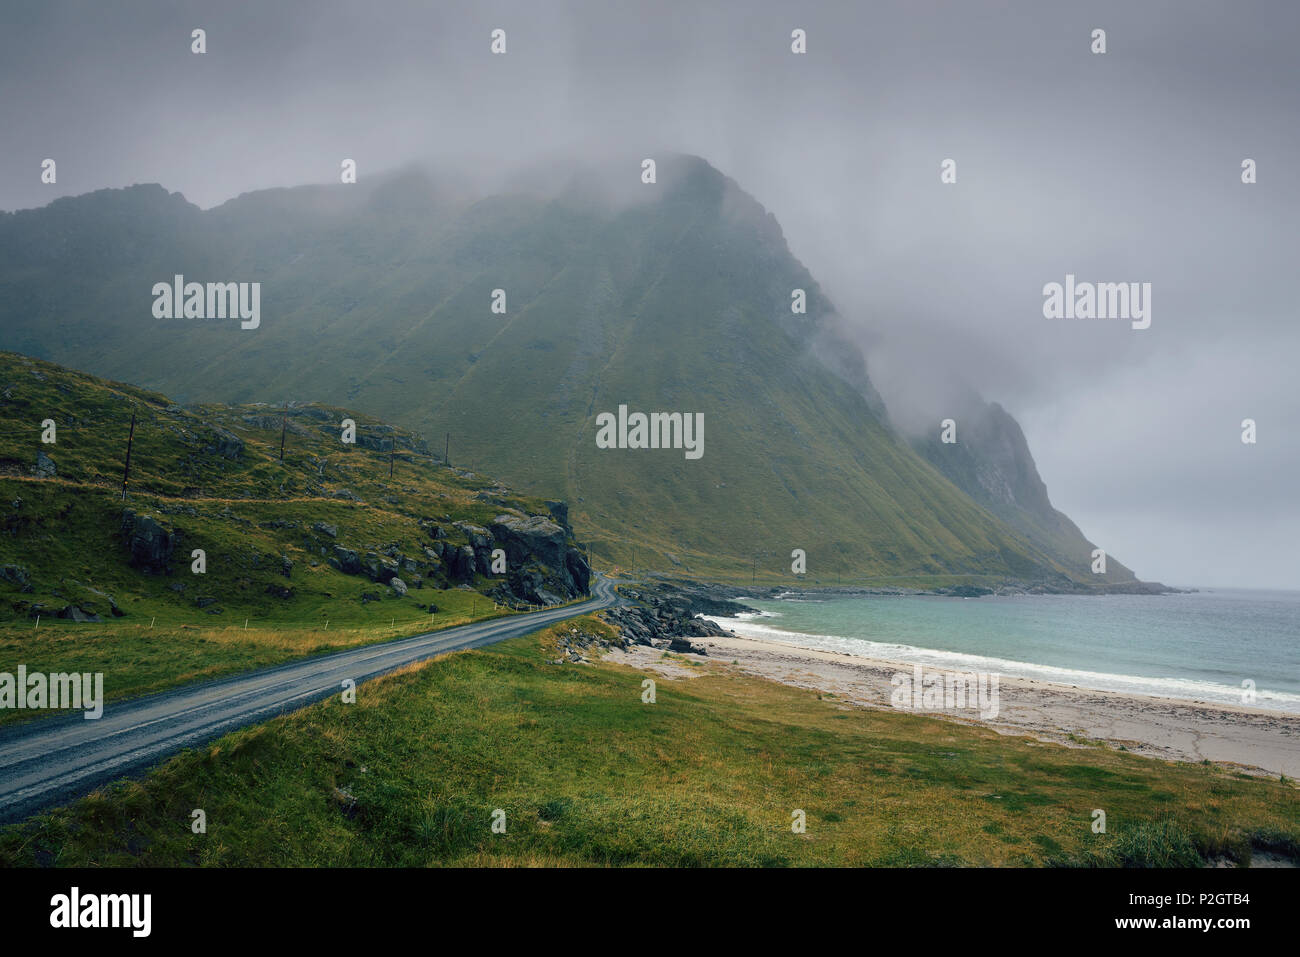 Scenic road along the coastline in Norway on a rainy and foggy day - Stock Image